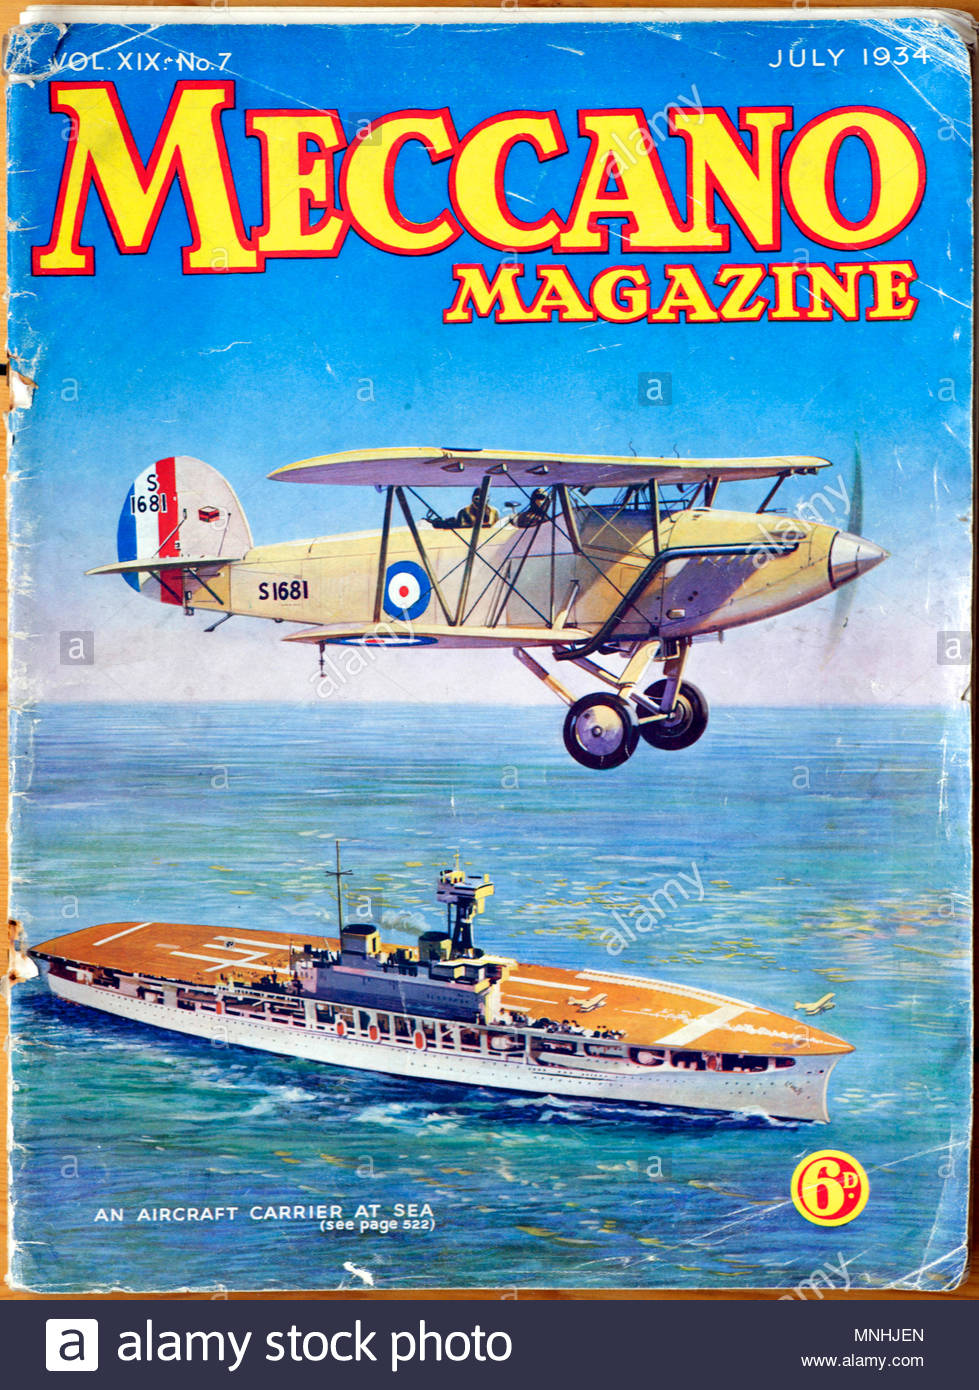 Meccano Monthly Magazine, July 1934 - Stock Image